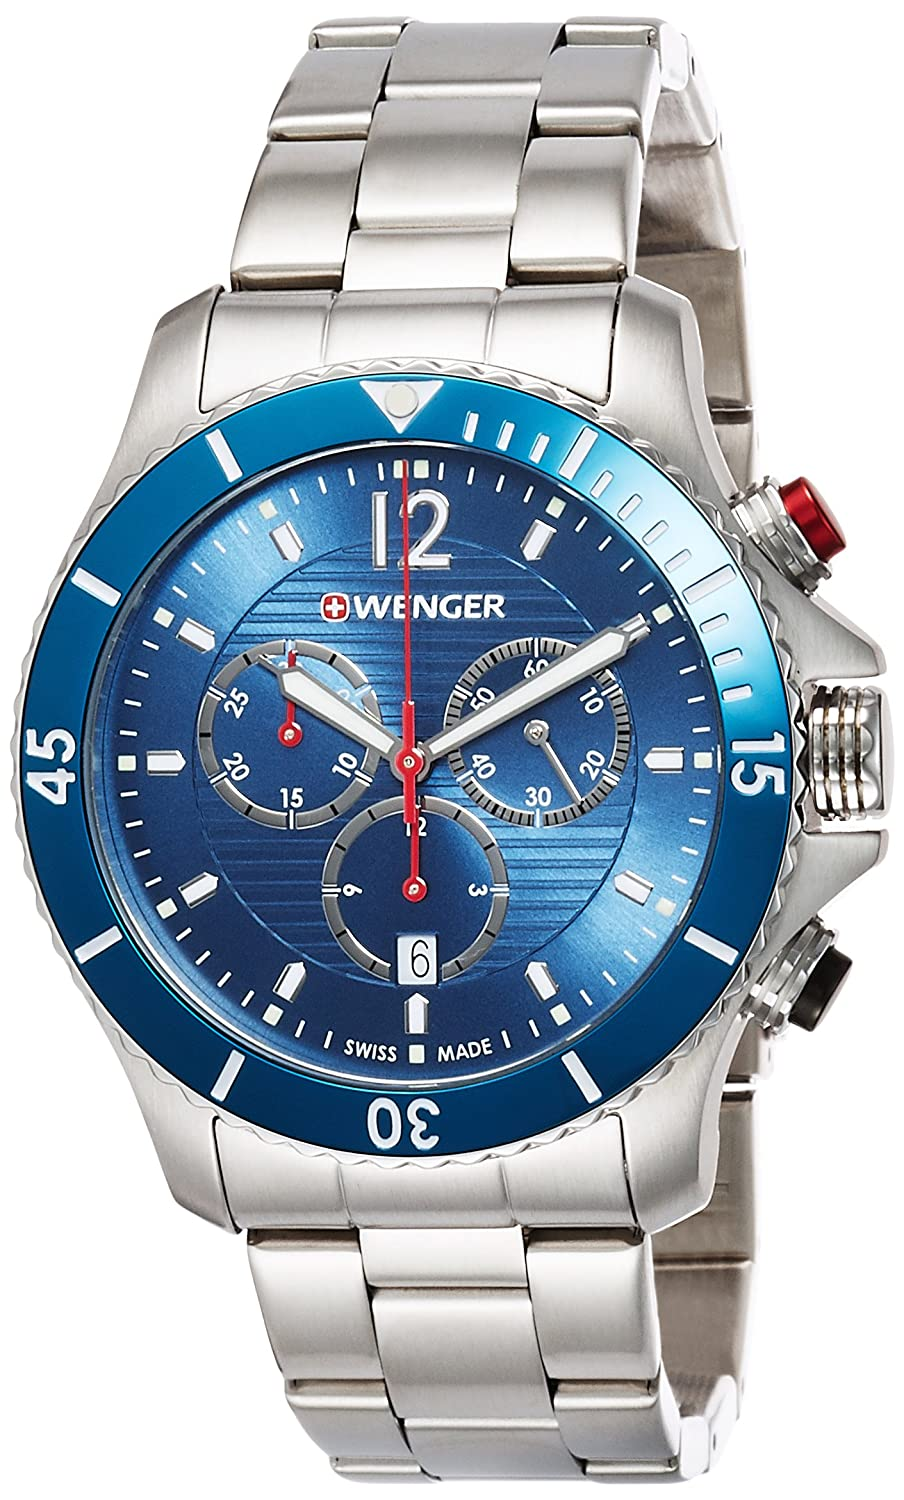 WEGNER Unisex-Armbanduhr 01.0643.111 WENGER SEAFORCE CHRONO Analog Quarz Edelstahl 01.0643.111 WENGER SEAFORCE CHRONO